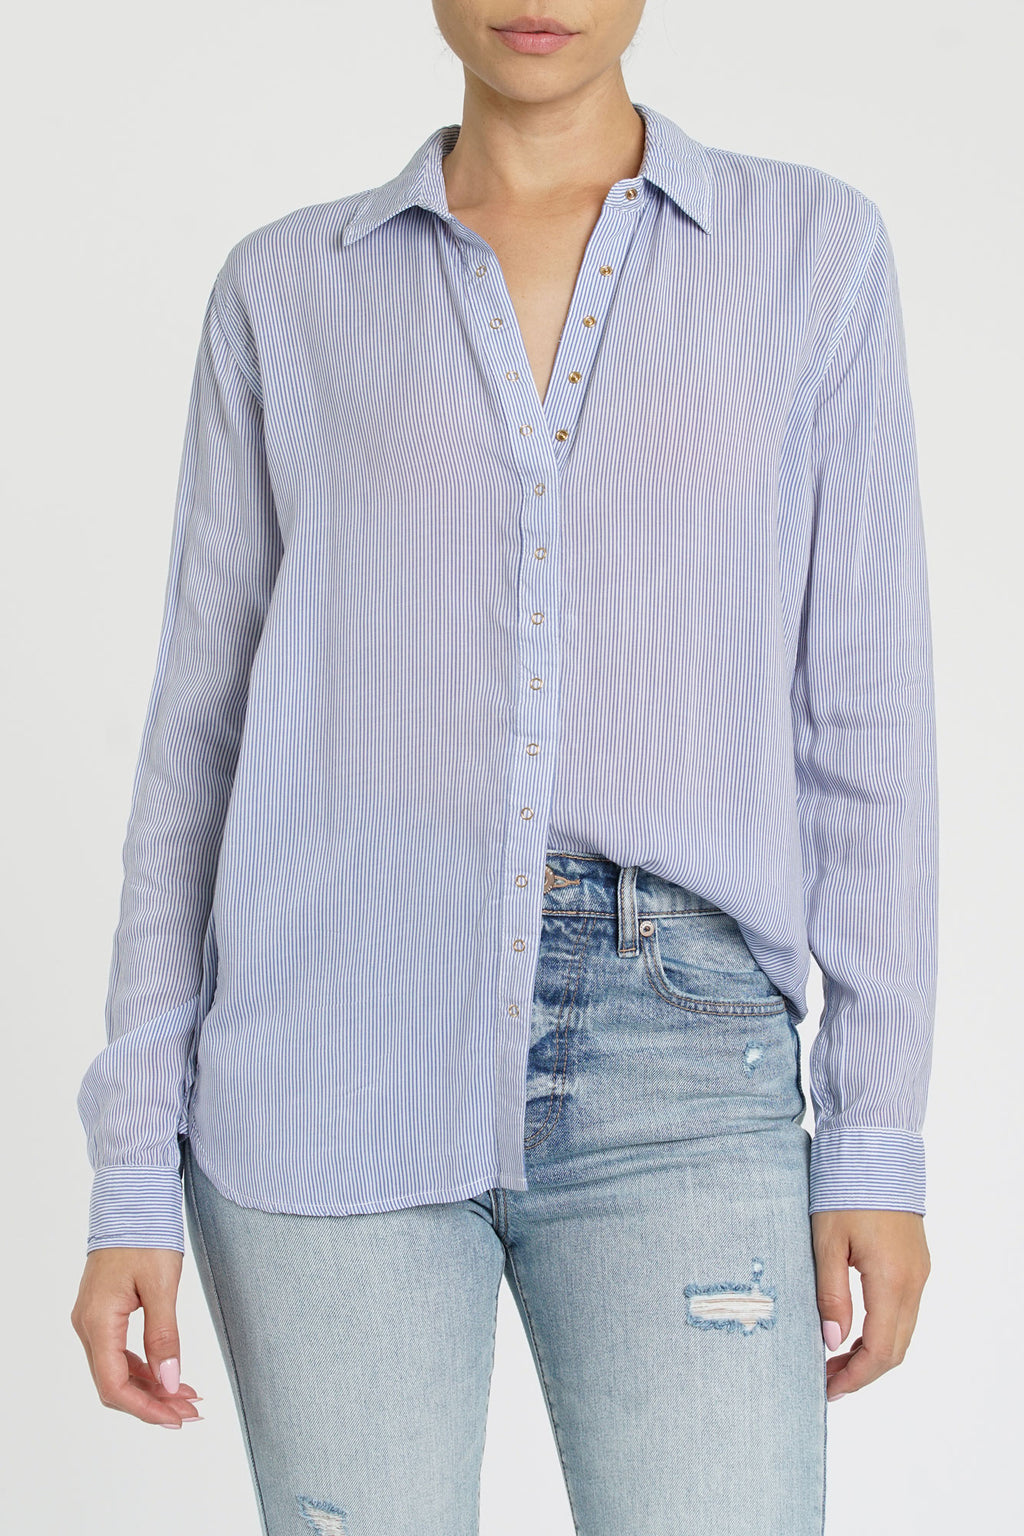 Evie Stripped Long Sleeve Button Up - Bowler